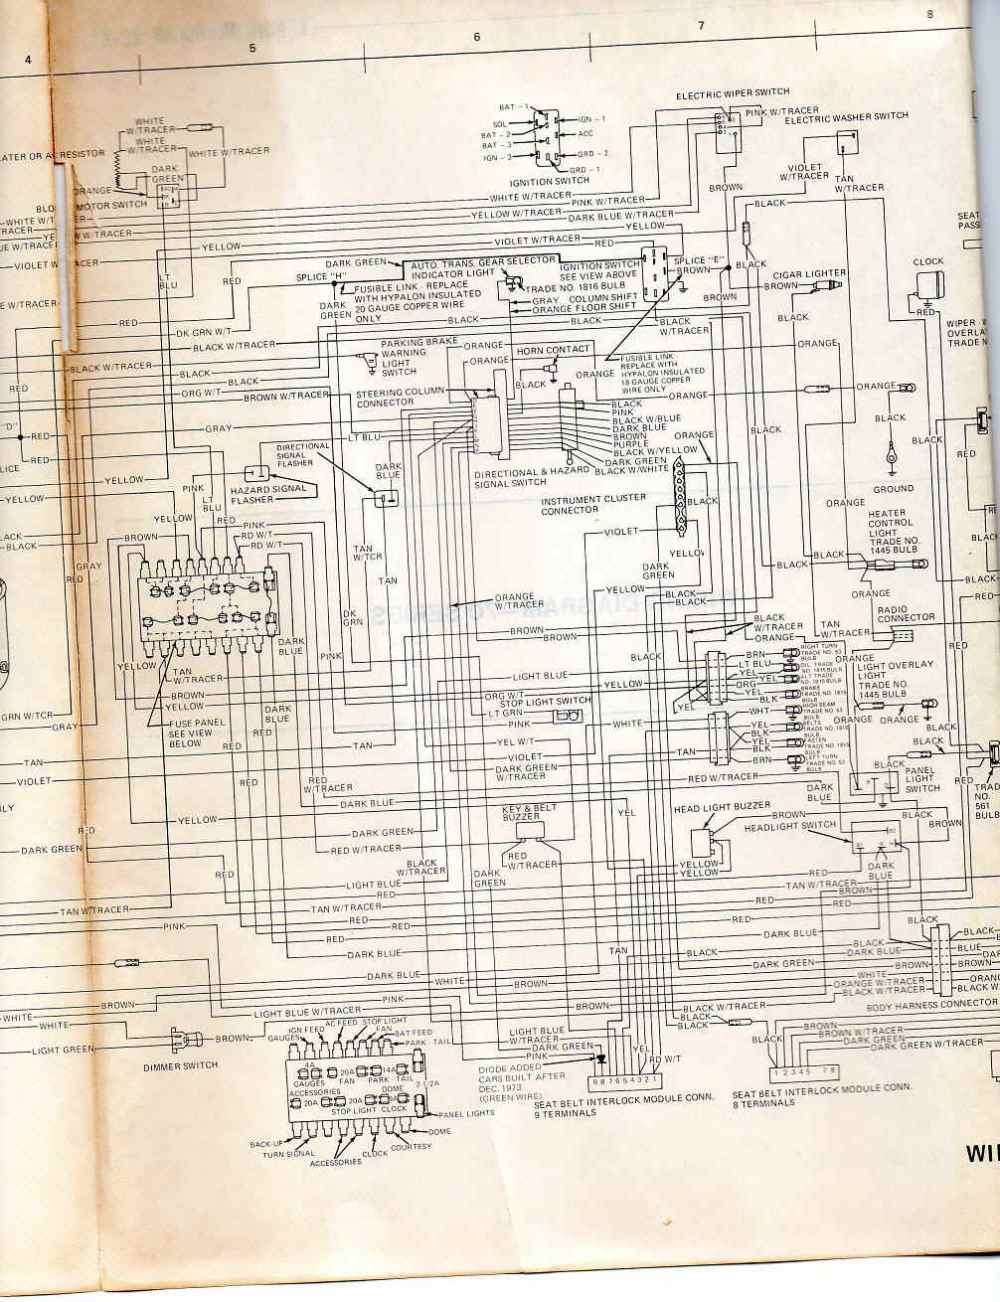 medium resolution of 1969 amc amx wiring diagram share circuit diagrams amc amx wiring harness share circuit diagrams 1969